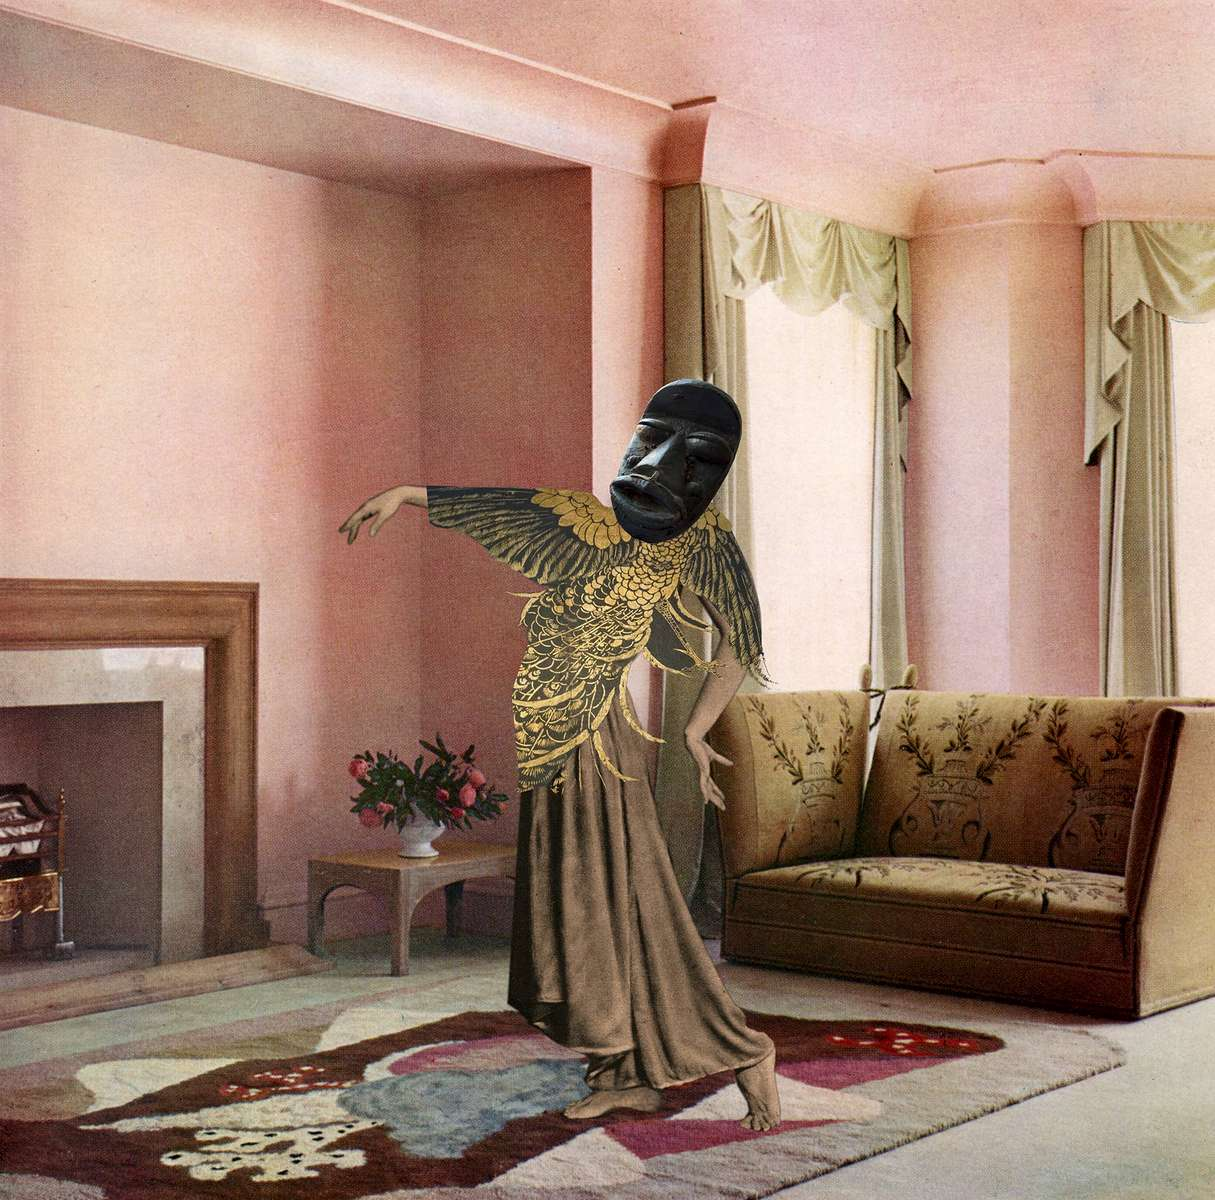 Mary Wigman strikes a pose wearing a peacock Inspired frock and African mask in a lovely pink drawing room designed by John Hill for Messrs Green & Abbott, Ltd. Rose, grey, cream, ginger colour scheme predominate. The peacock top is an element taken from the James Abbott McNeill Whistler Peacock Room, at the Freer Gallery of Art, Washington, D.C. (2014)